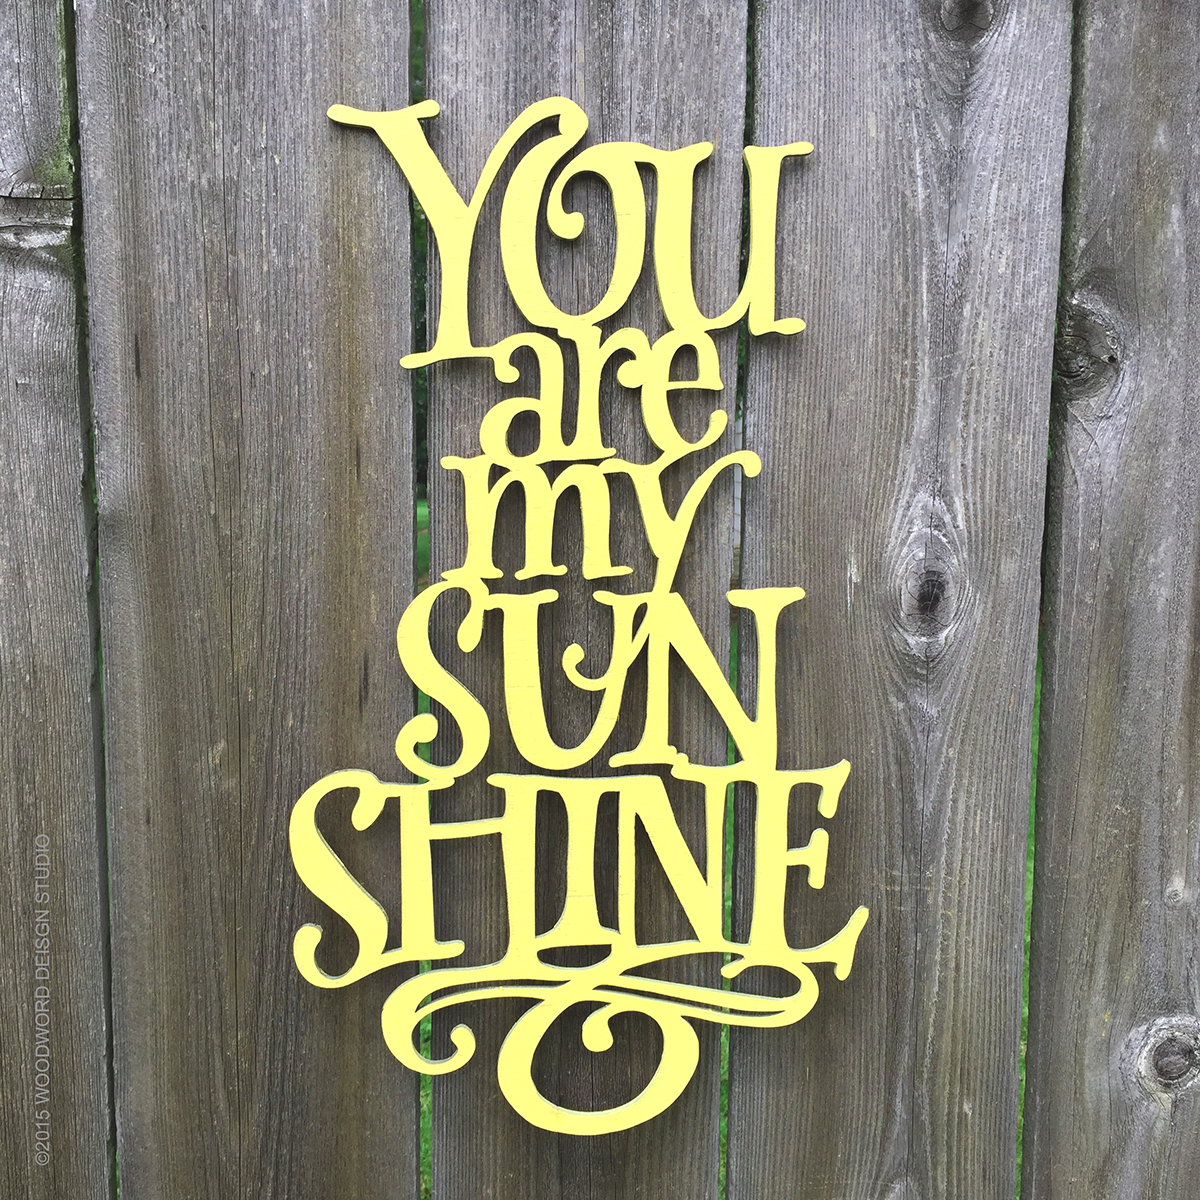 You are my sunshing.jpg